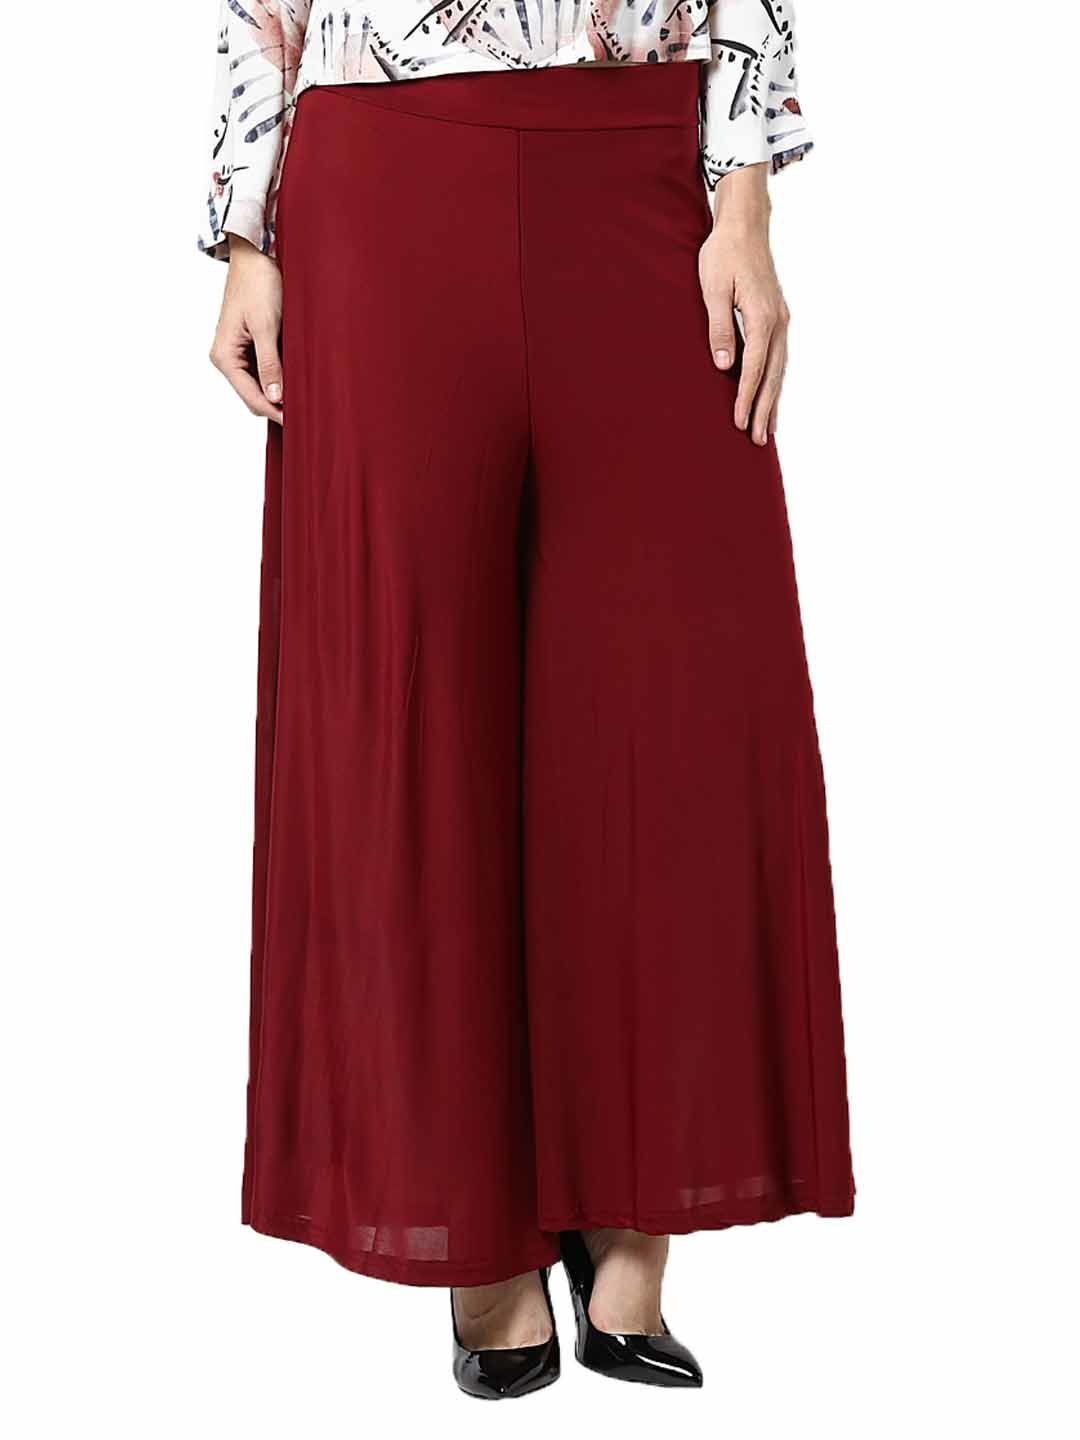 look drop dead gorgeouswearing this maroon coloured palazzo